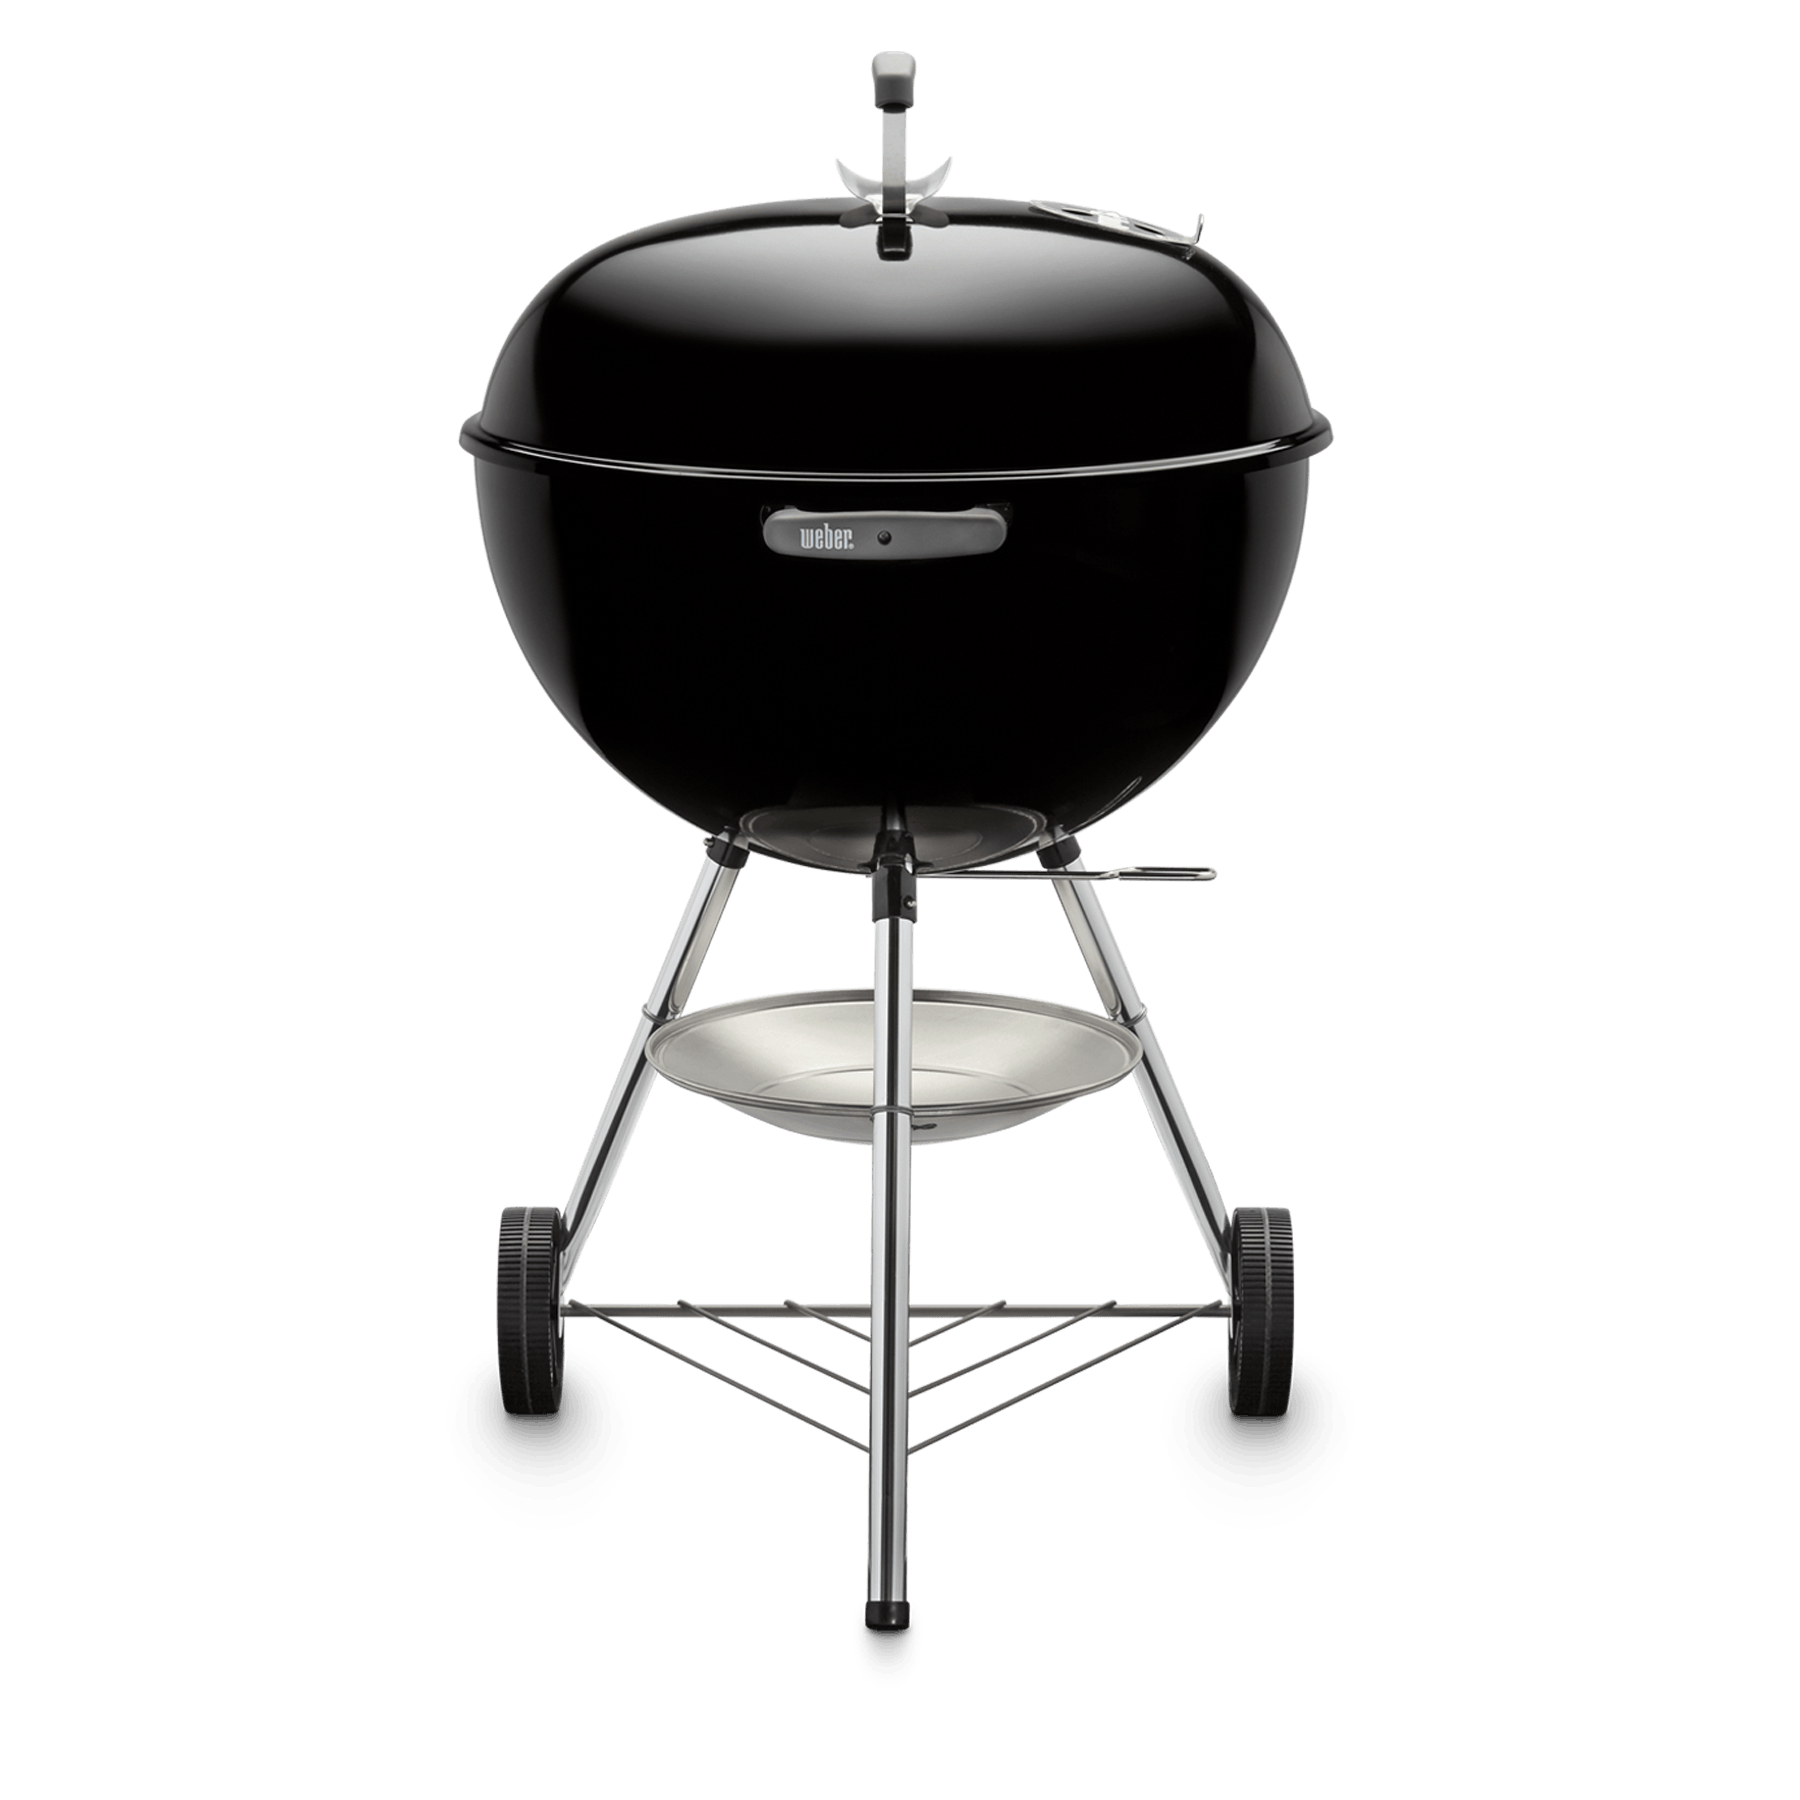 Original Kettle Charcoal Grill 57cm